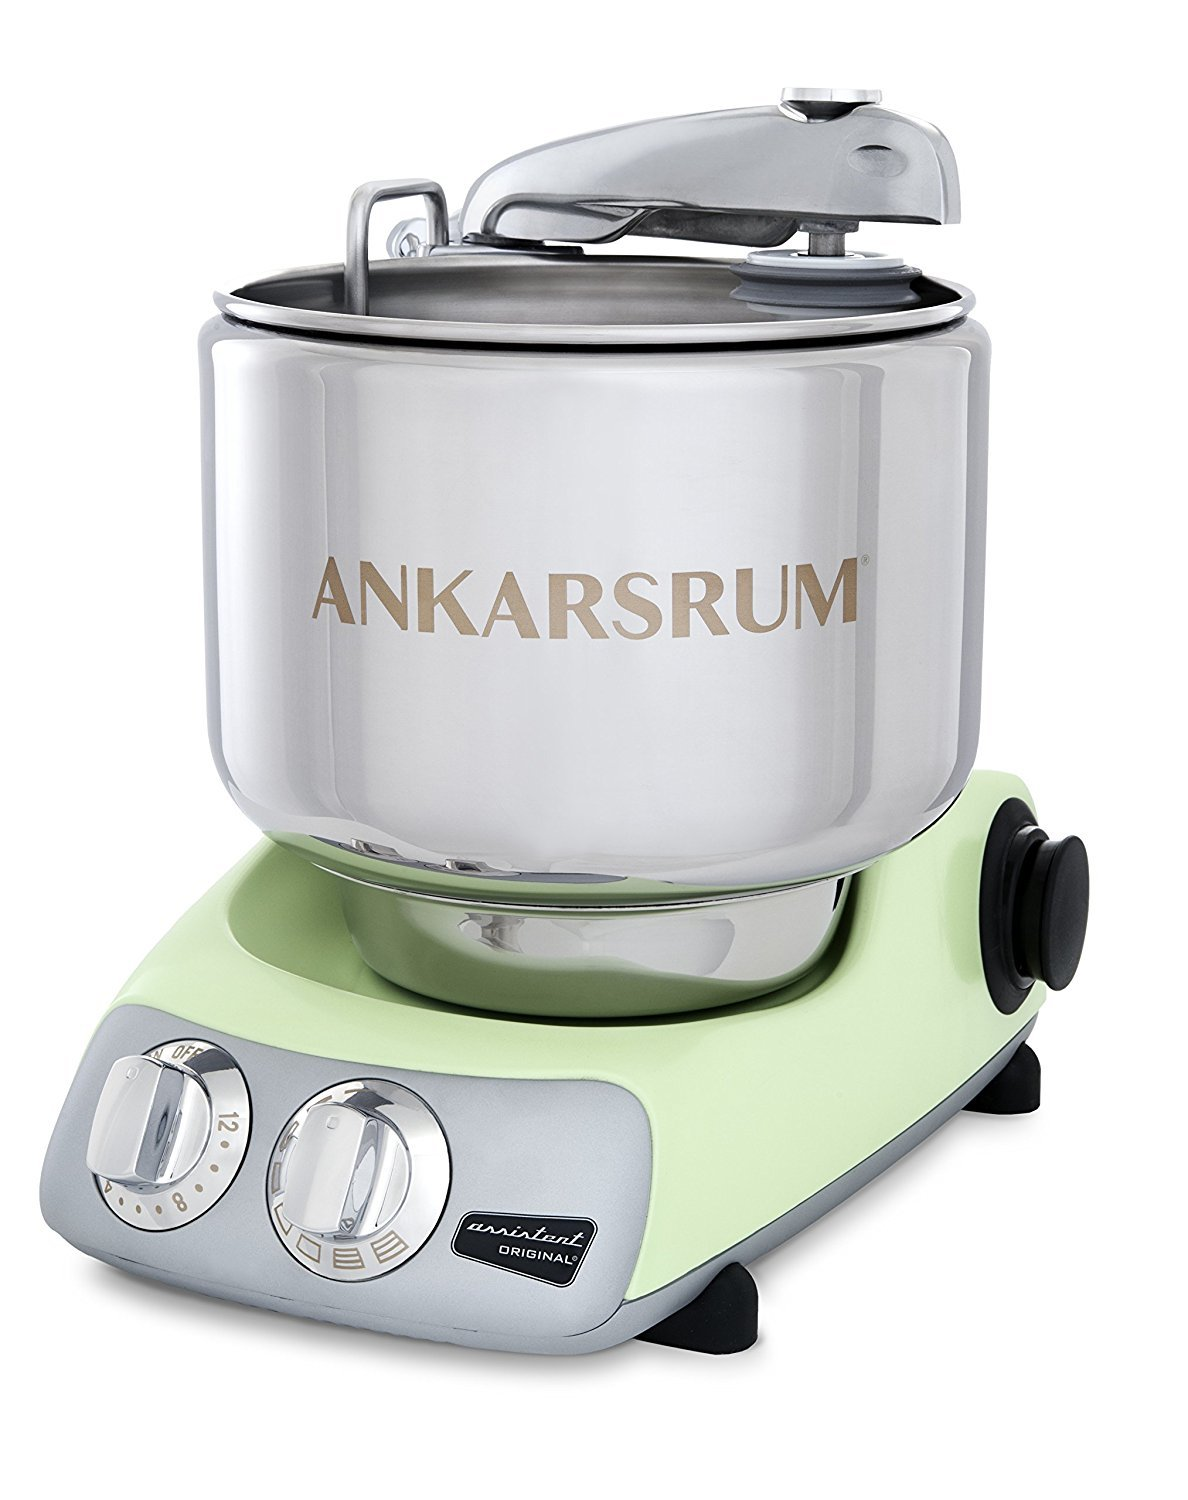 Ankarsrum Original 6230